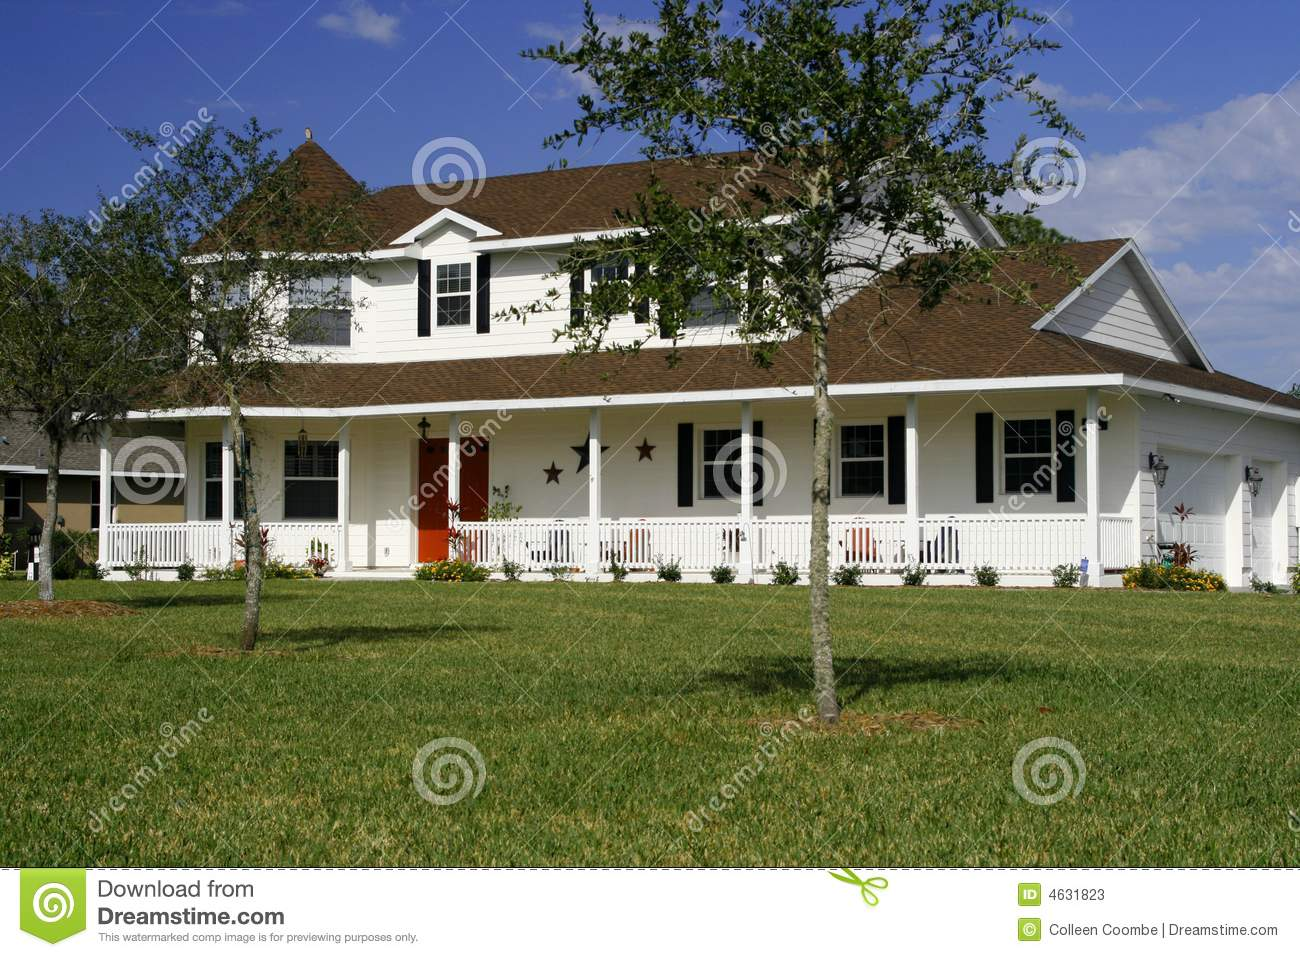 New american style home stock photos image 4631823 for New american house style